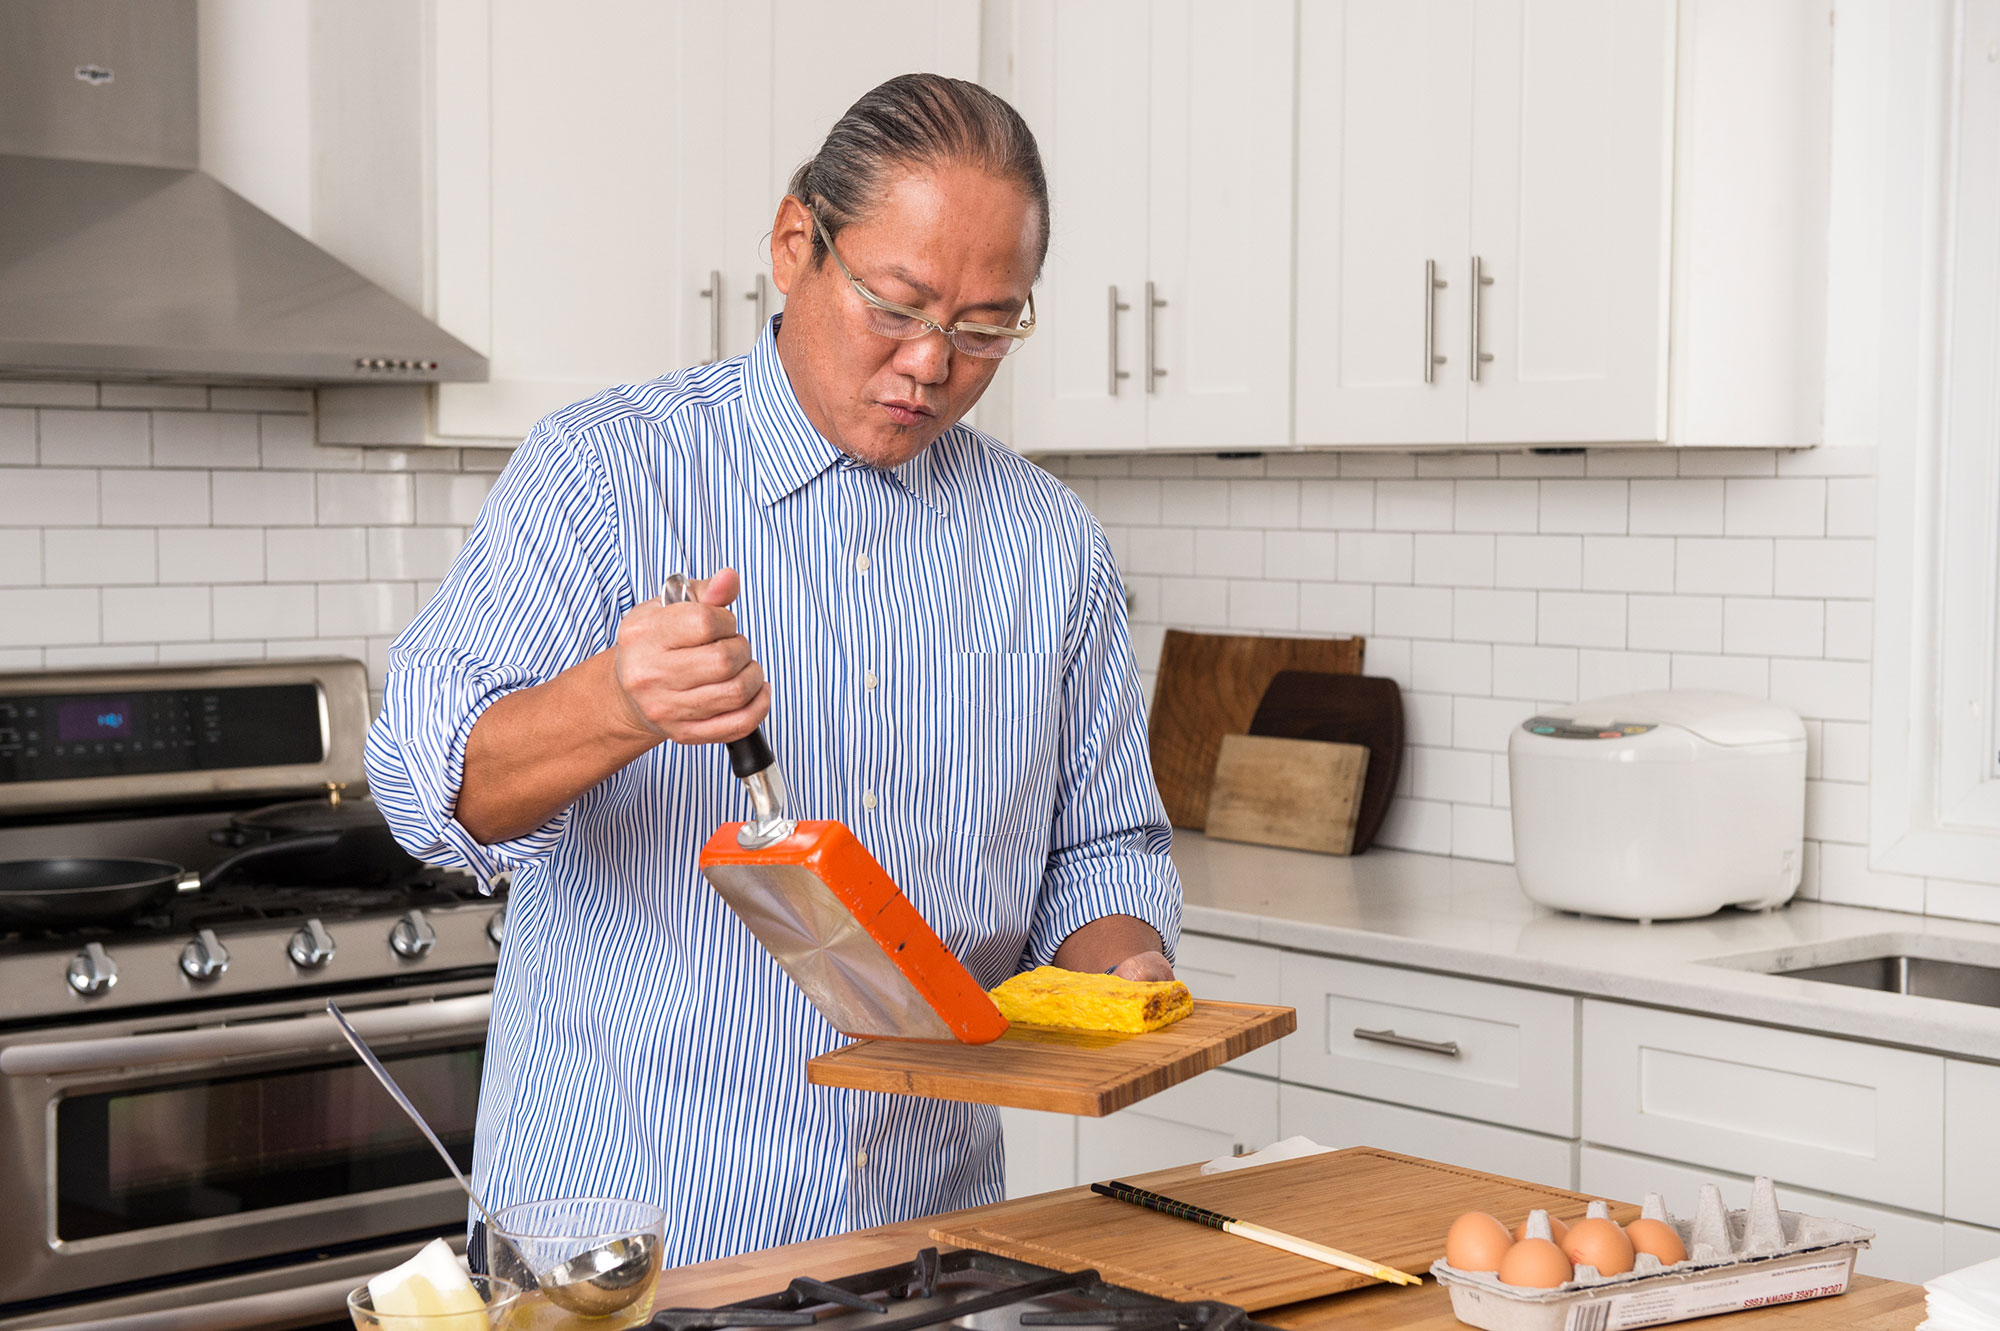 Iron Chef Morimoto's Step-By-Step Guide to Making the Perfect Japanese Omelet